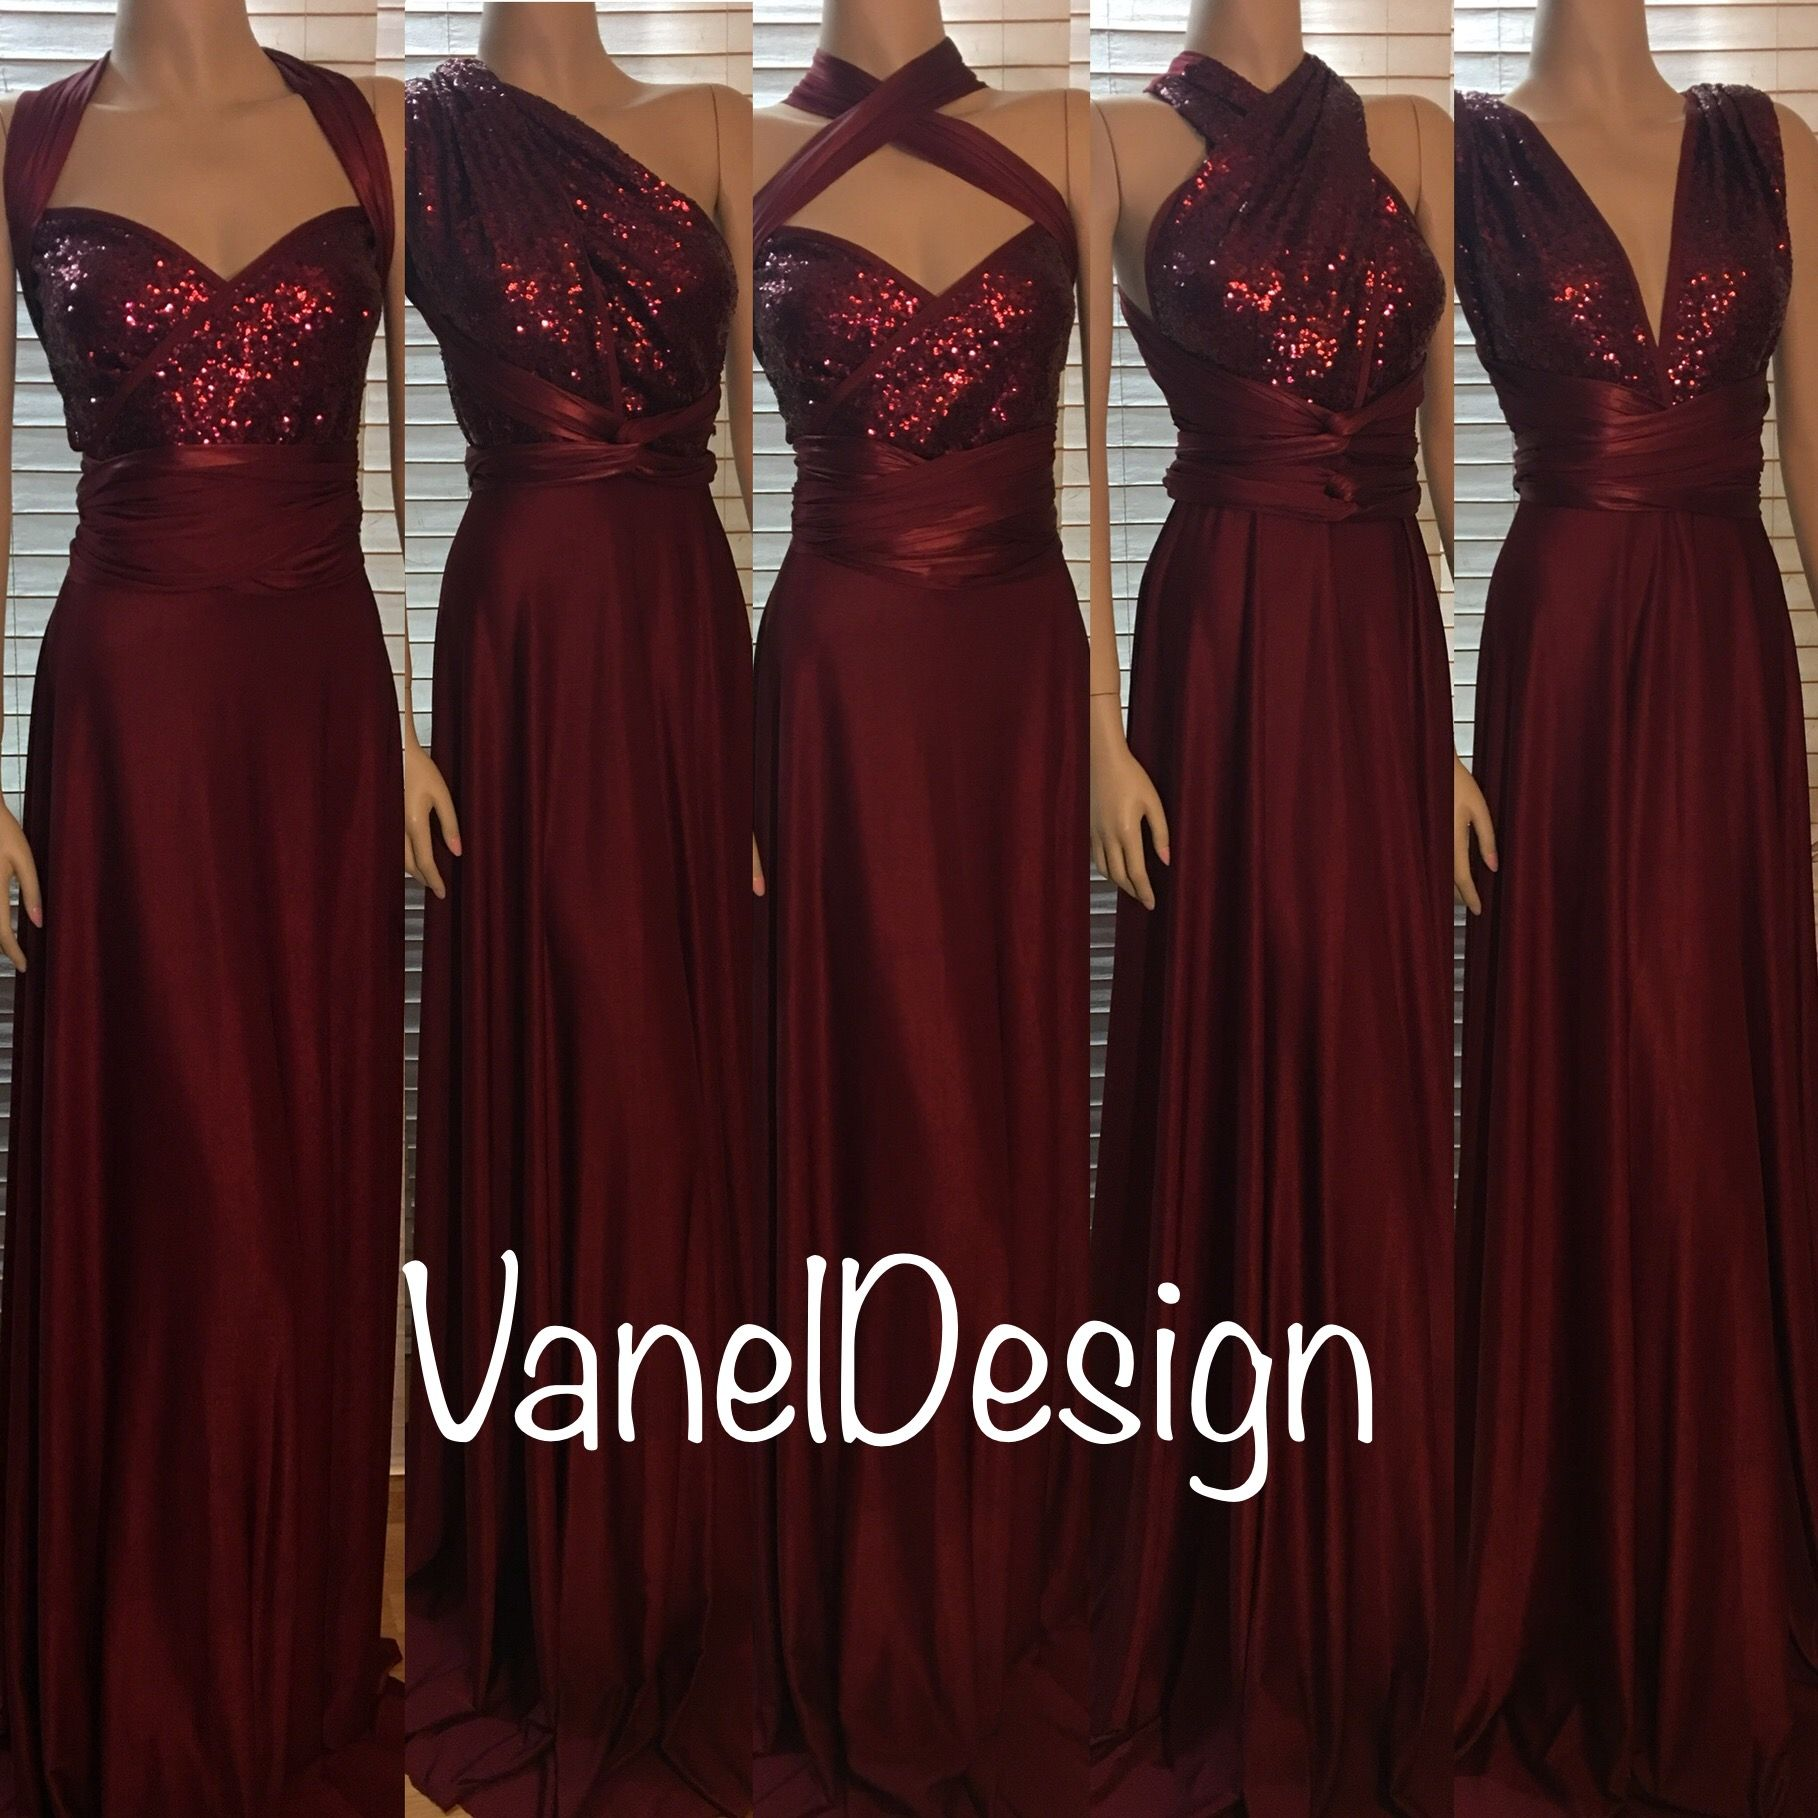 Sequins Bridesmaids Dress Burgundy Convertible Infinity Wrap Handmade By Vaneldesign On Etsy Questions 818 404 4904